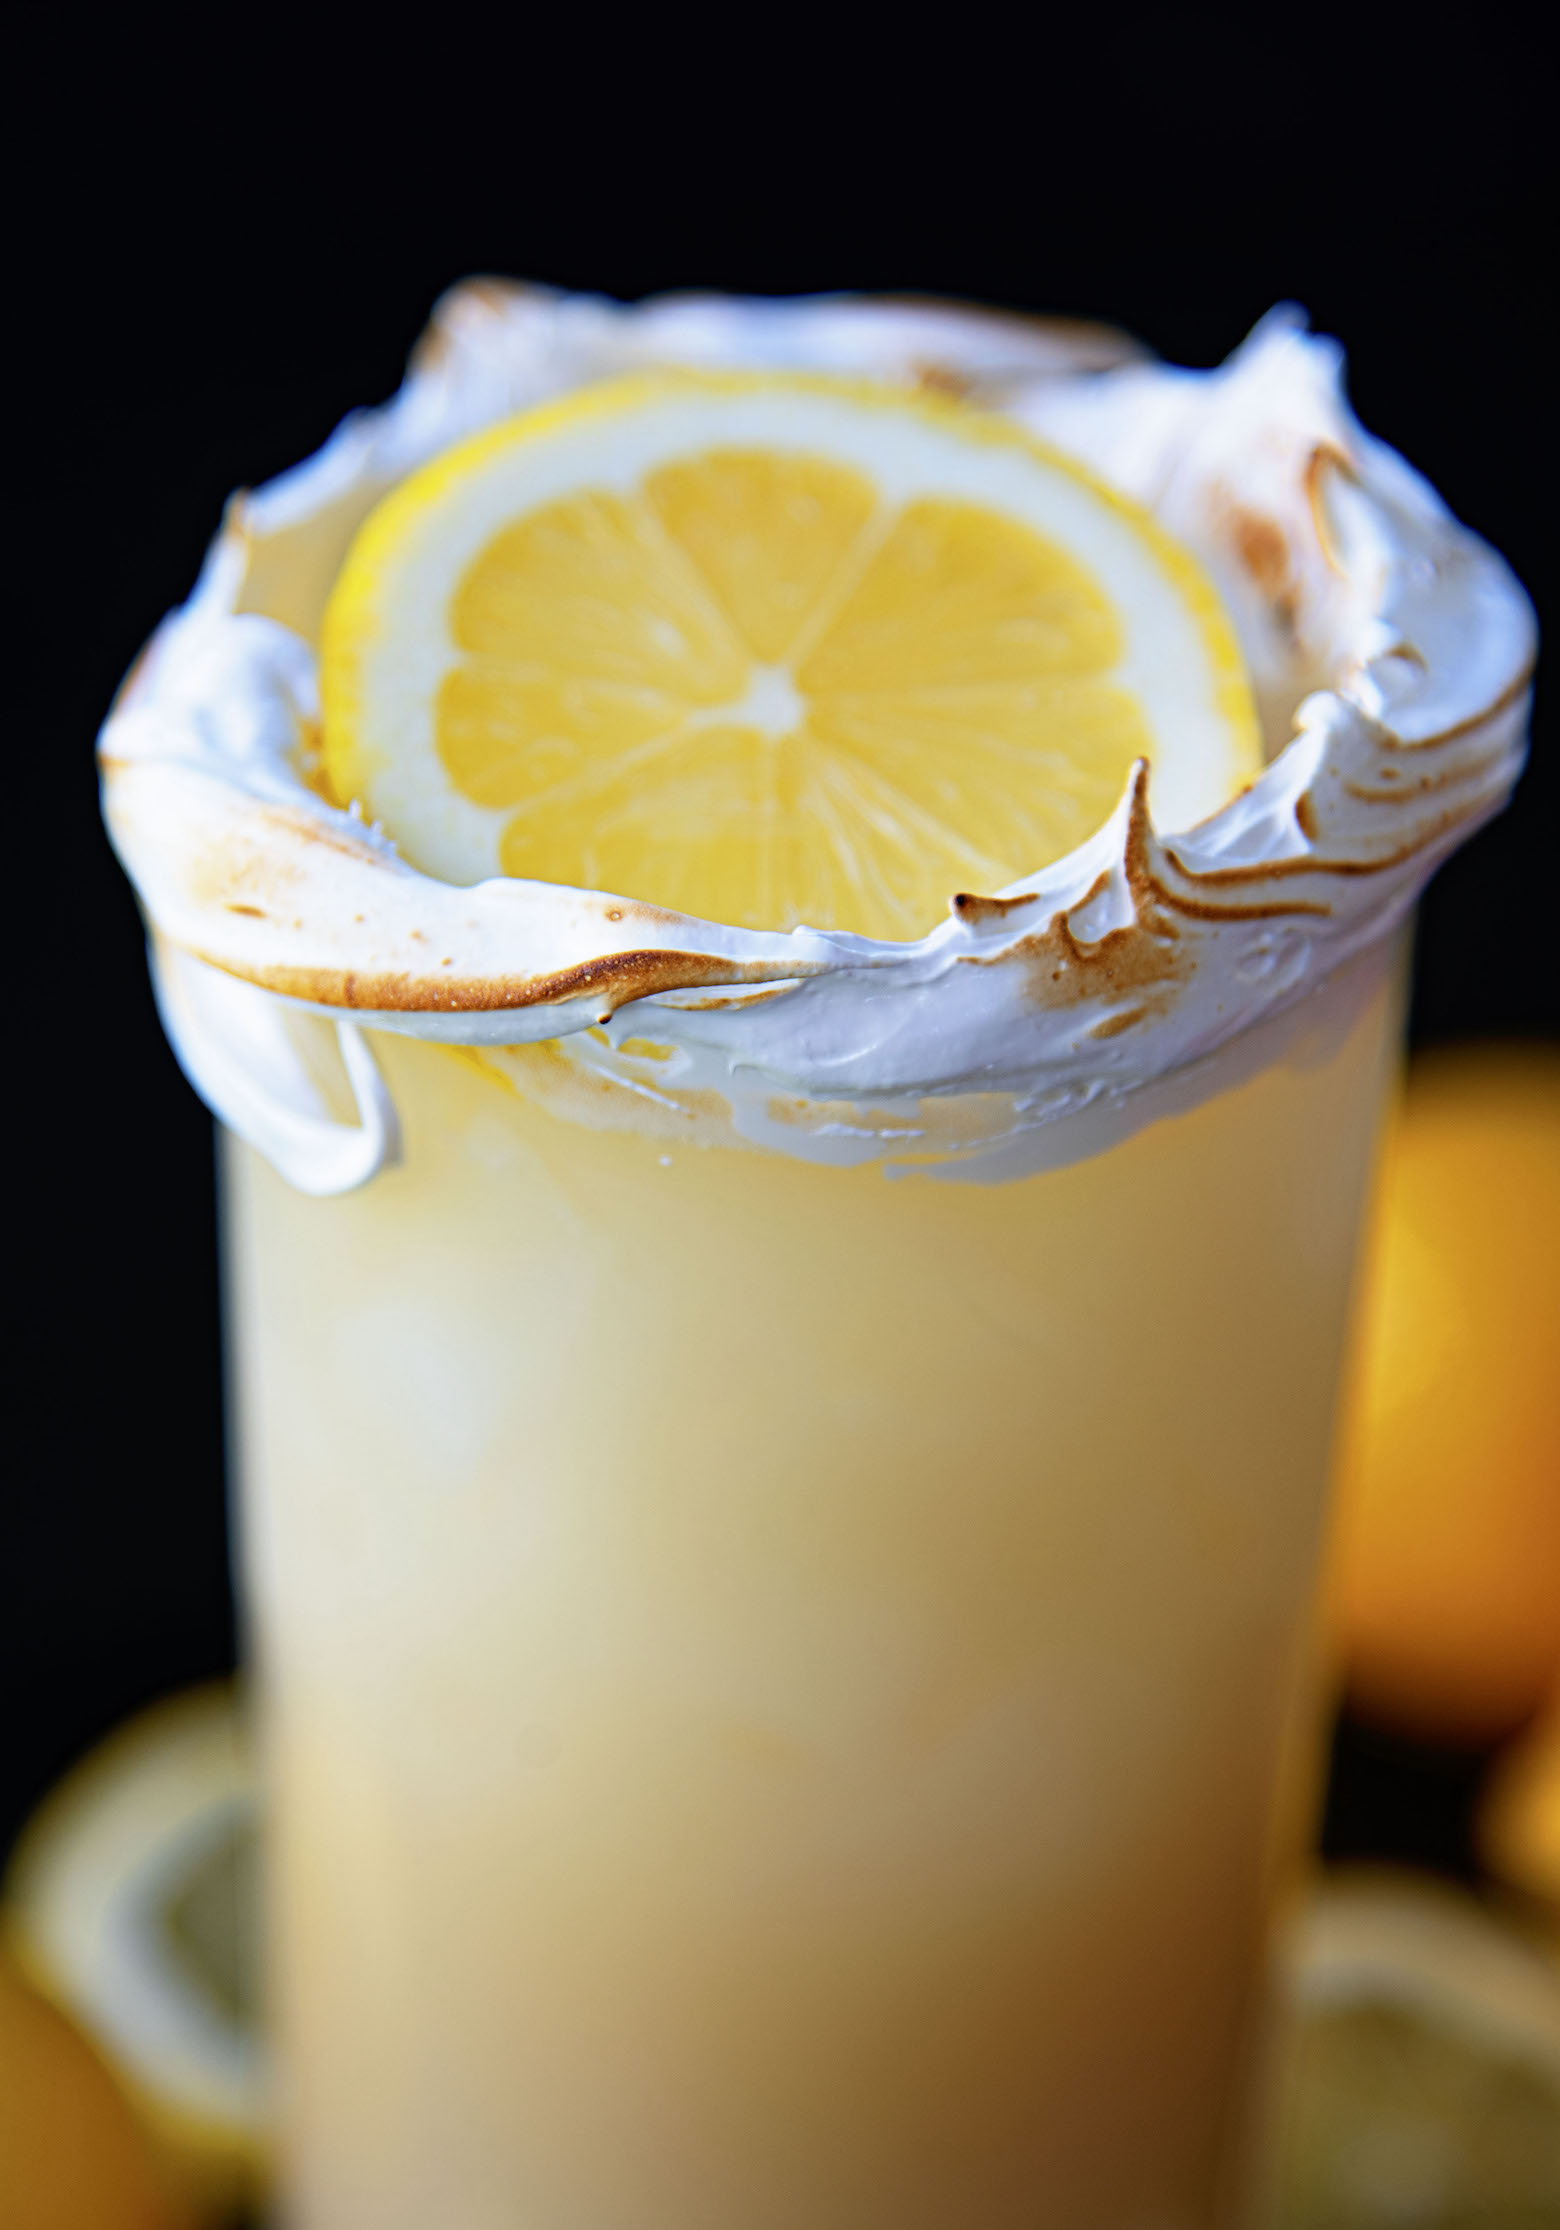 Up close shot of the cocktail and the lemon.